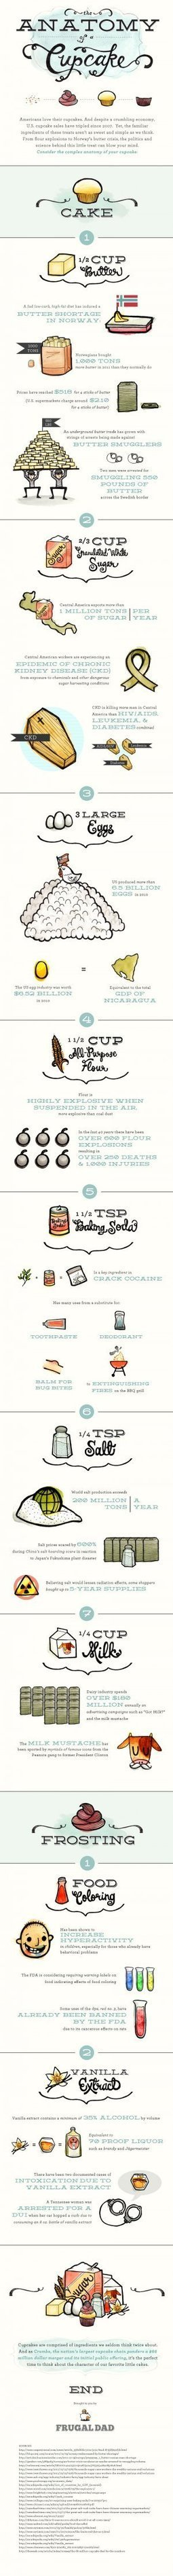 The Anatomy Of A Cupcake [INFOGRAPHIC] | INFOGRAPHICS | Scoop.it